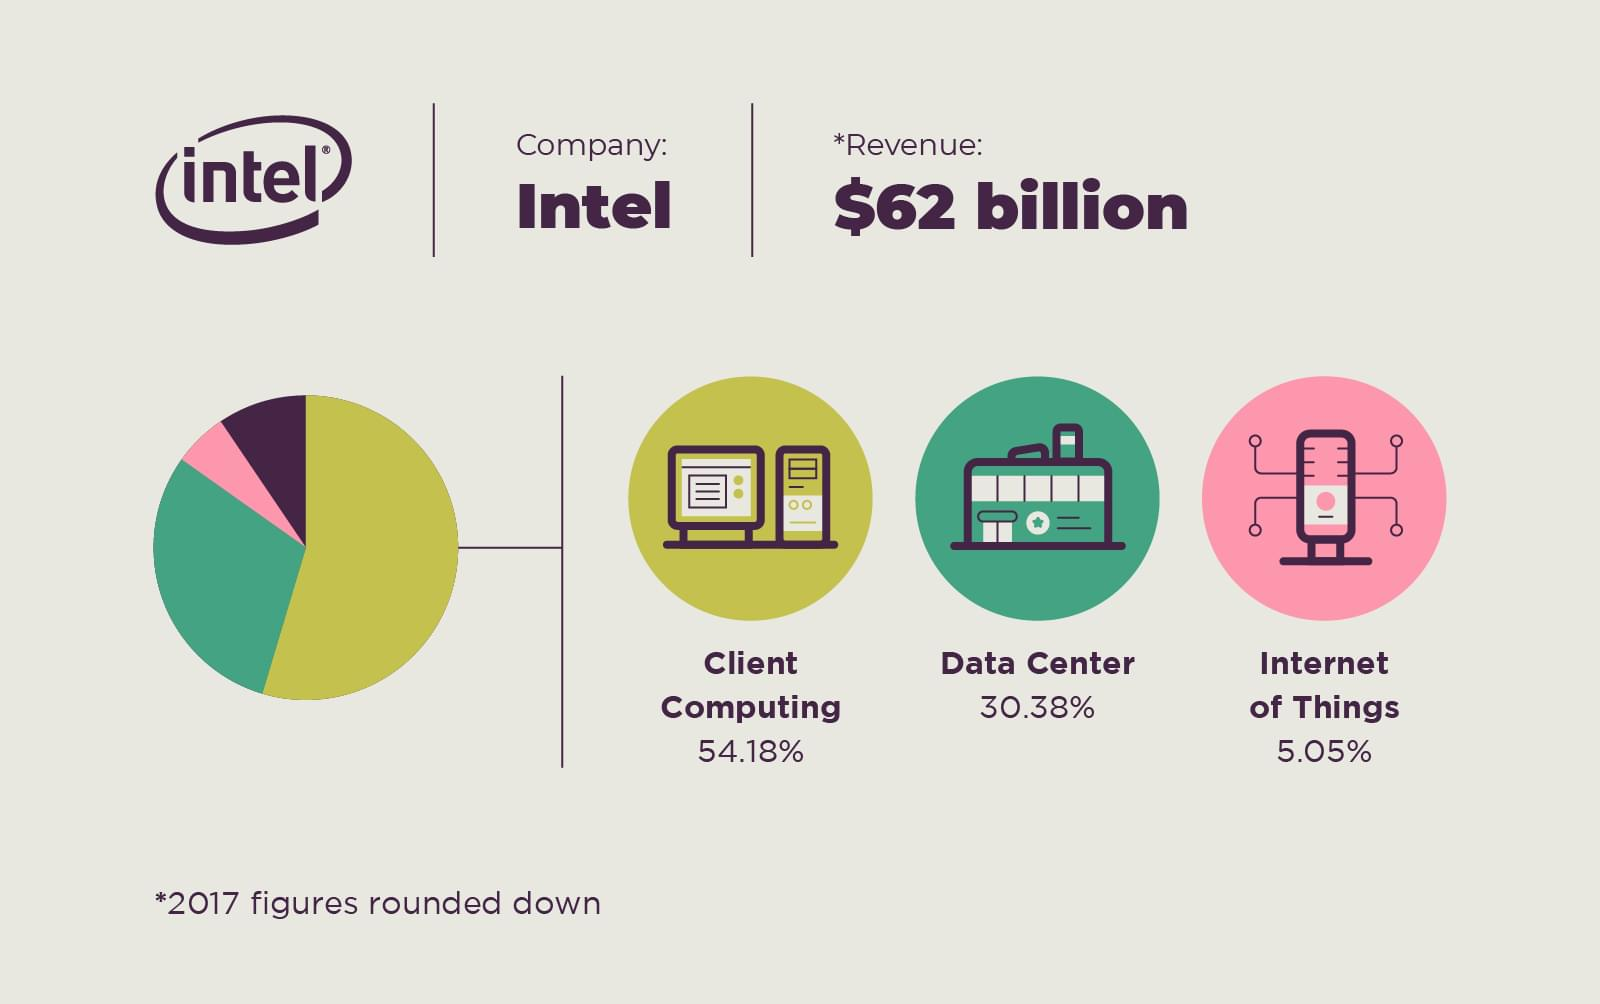 silicon valley chip manufacturer intel revenue streams